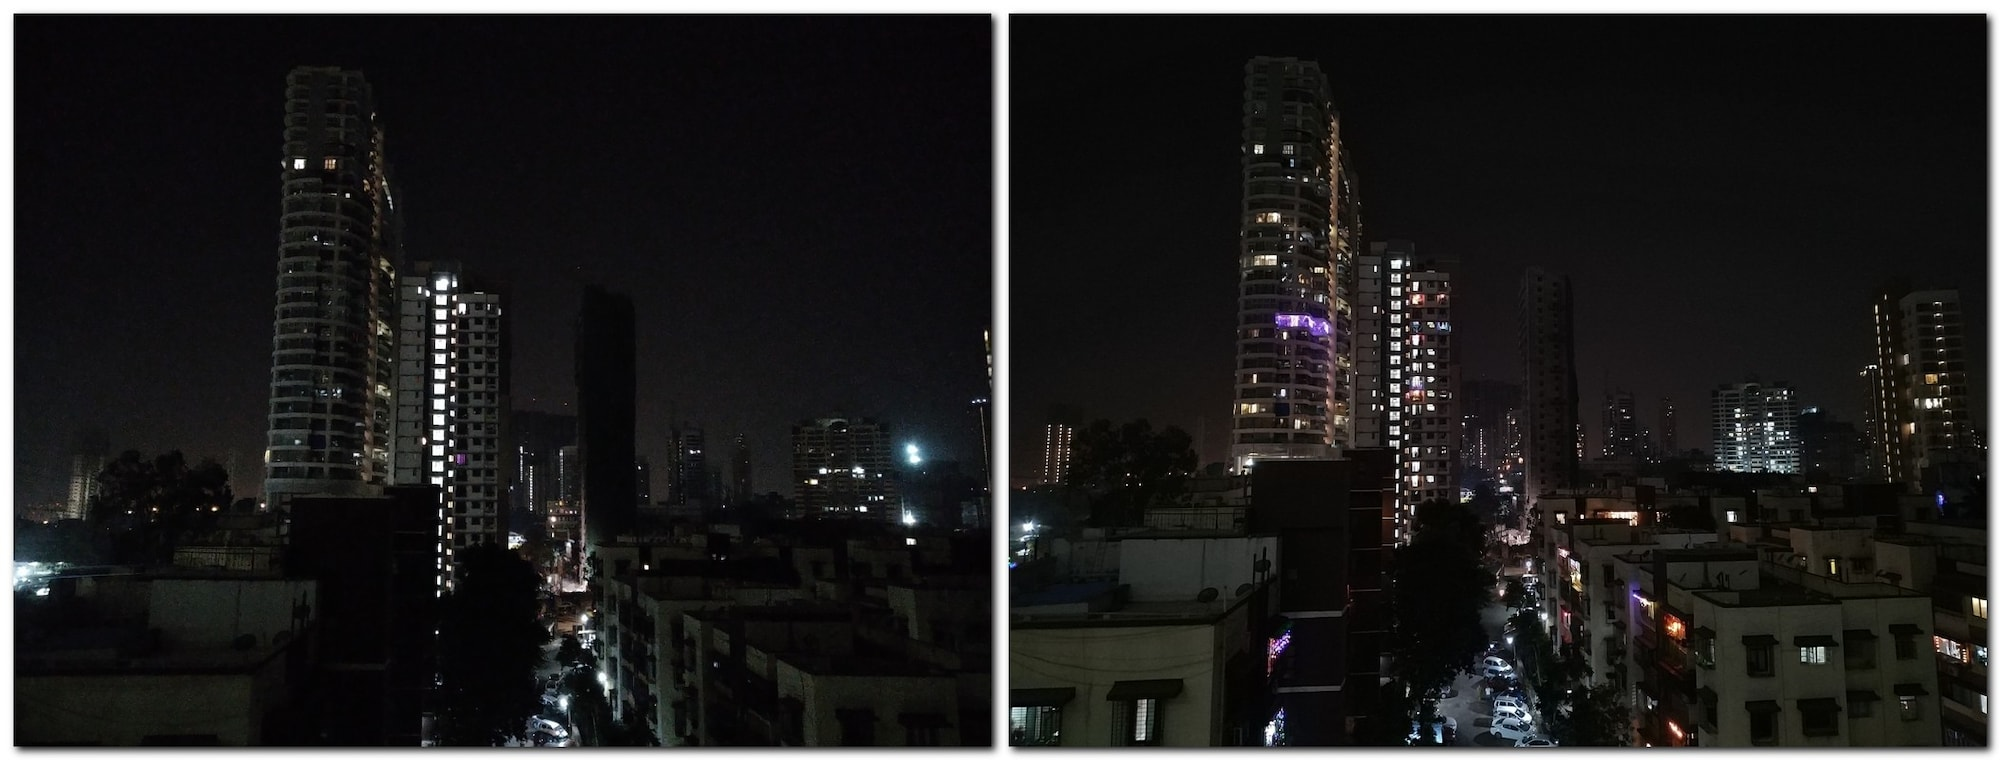 Night portrait comparison - Asus Zenfone Max Pro M2 (L) Redmi Note 6 Pro (R).